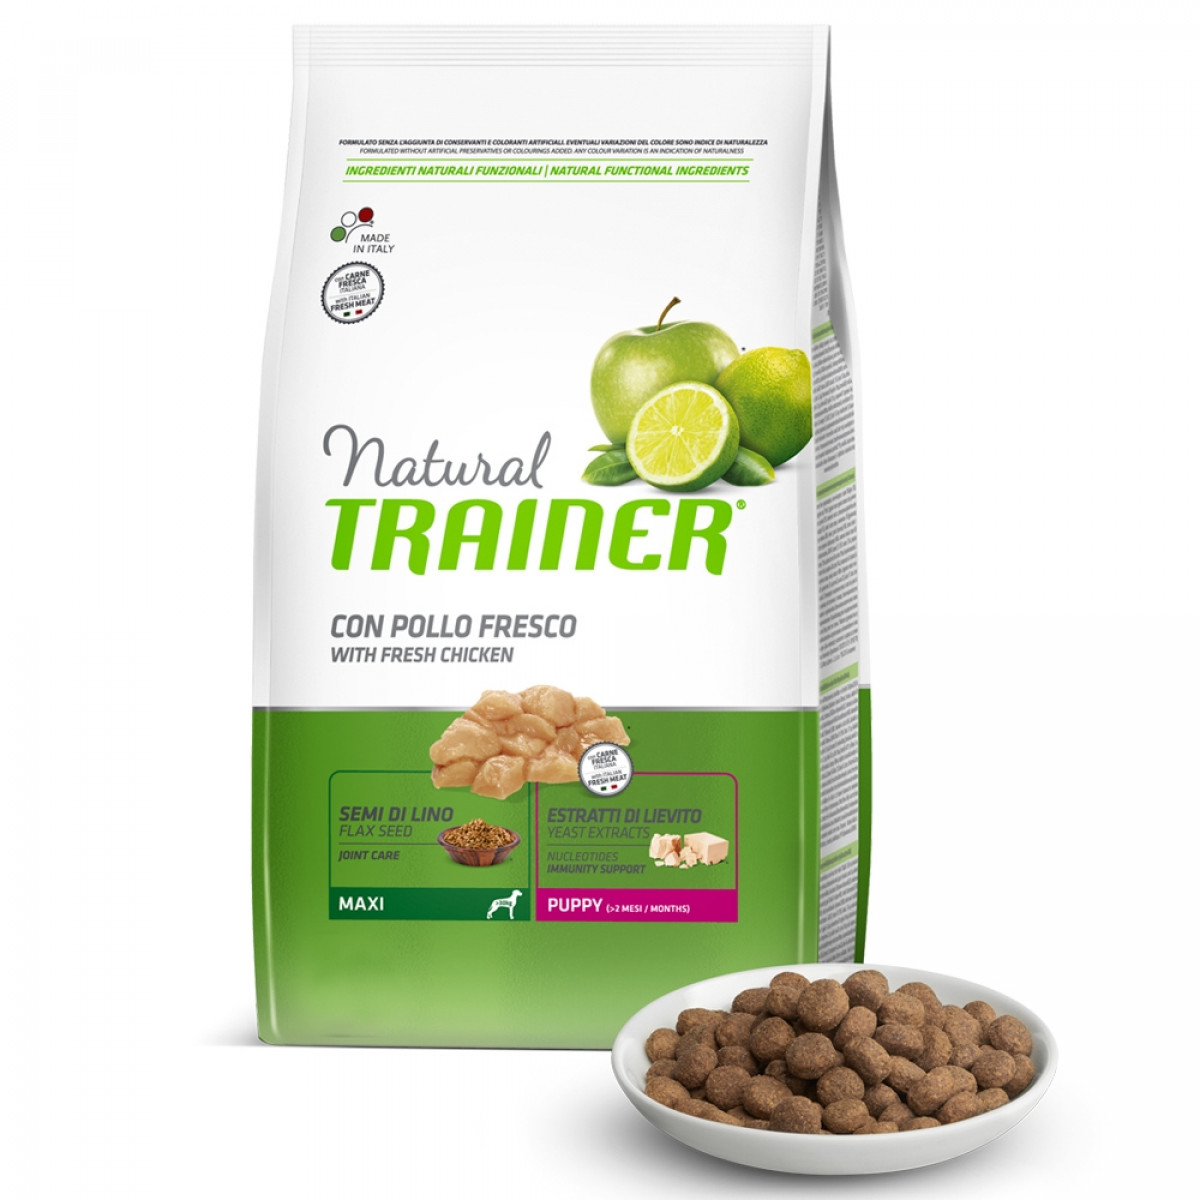 Trainer Natural Puppy Maxi 12kg